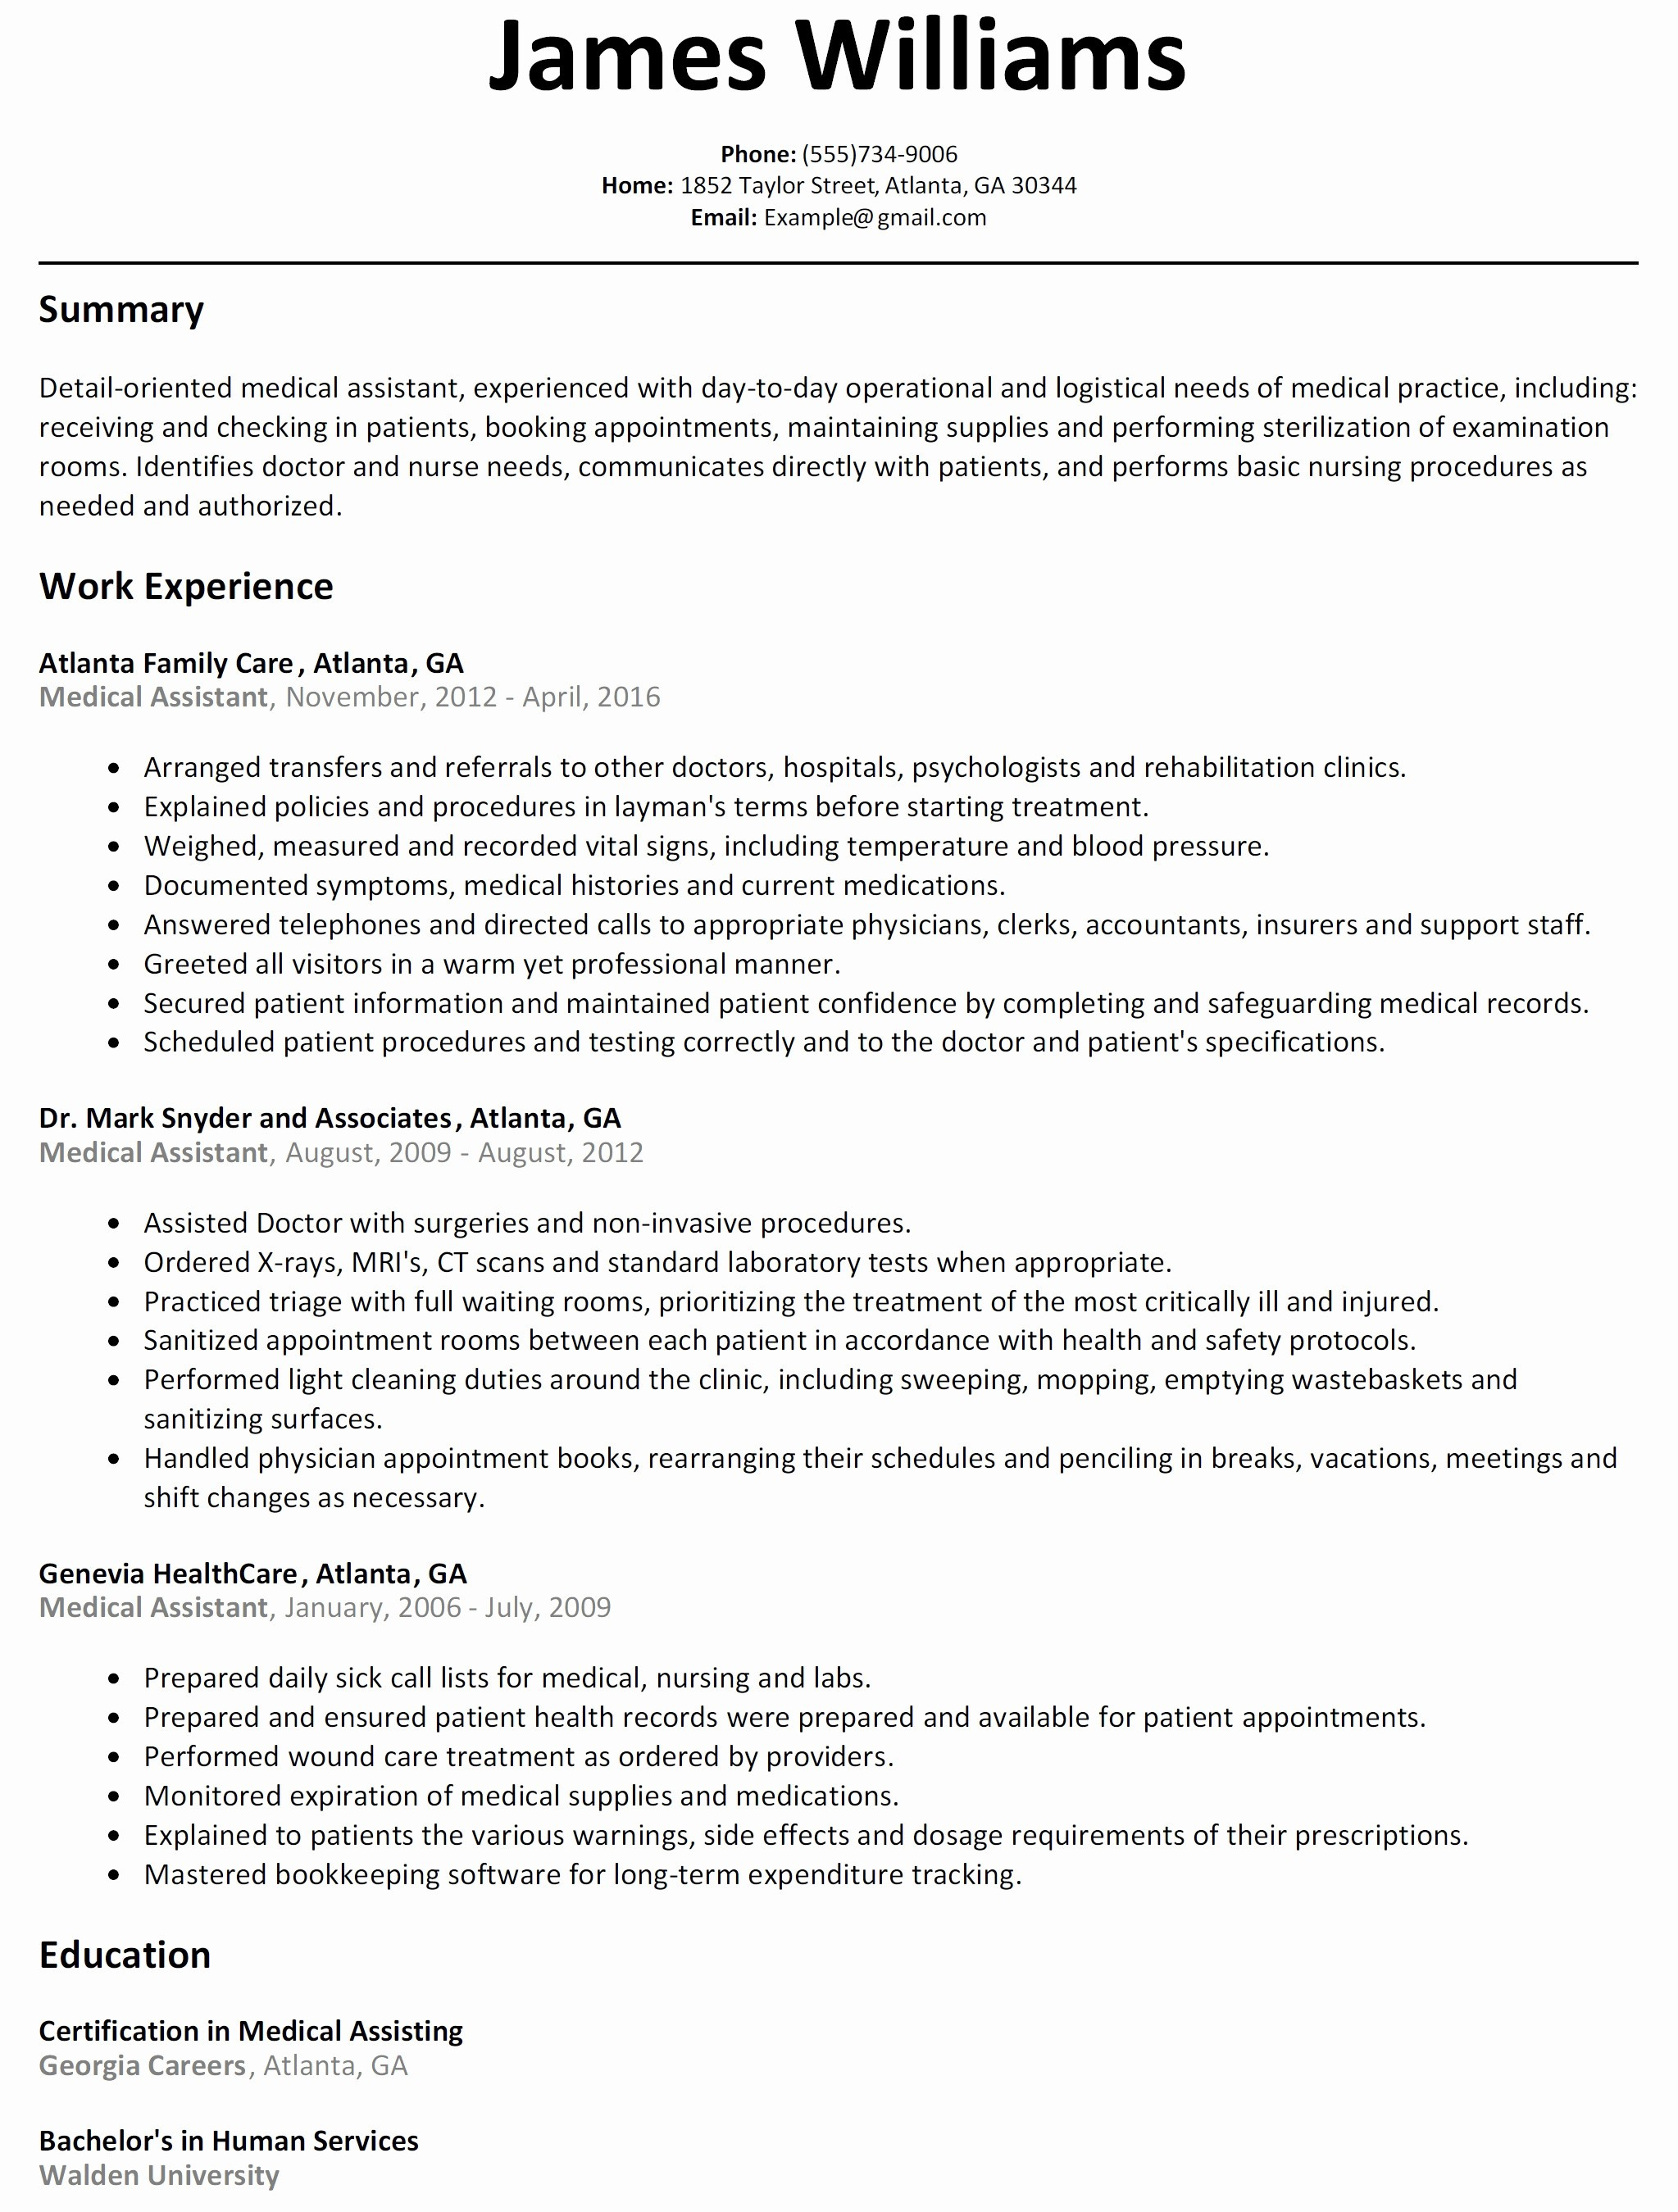 Professional Resume Template Free - Basic Sample Resume Best Open source Resume Templates Simple